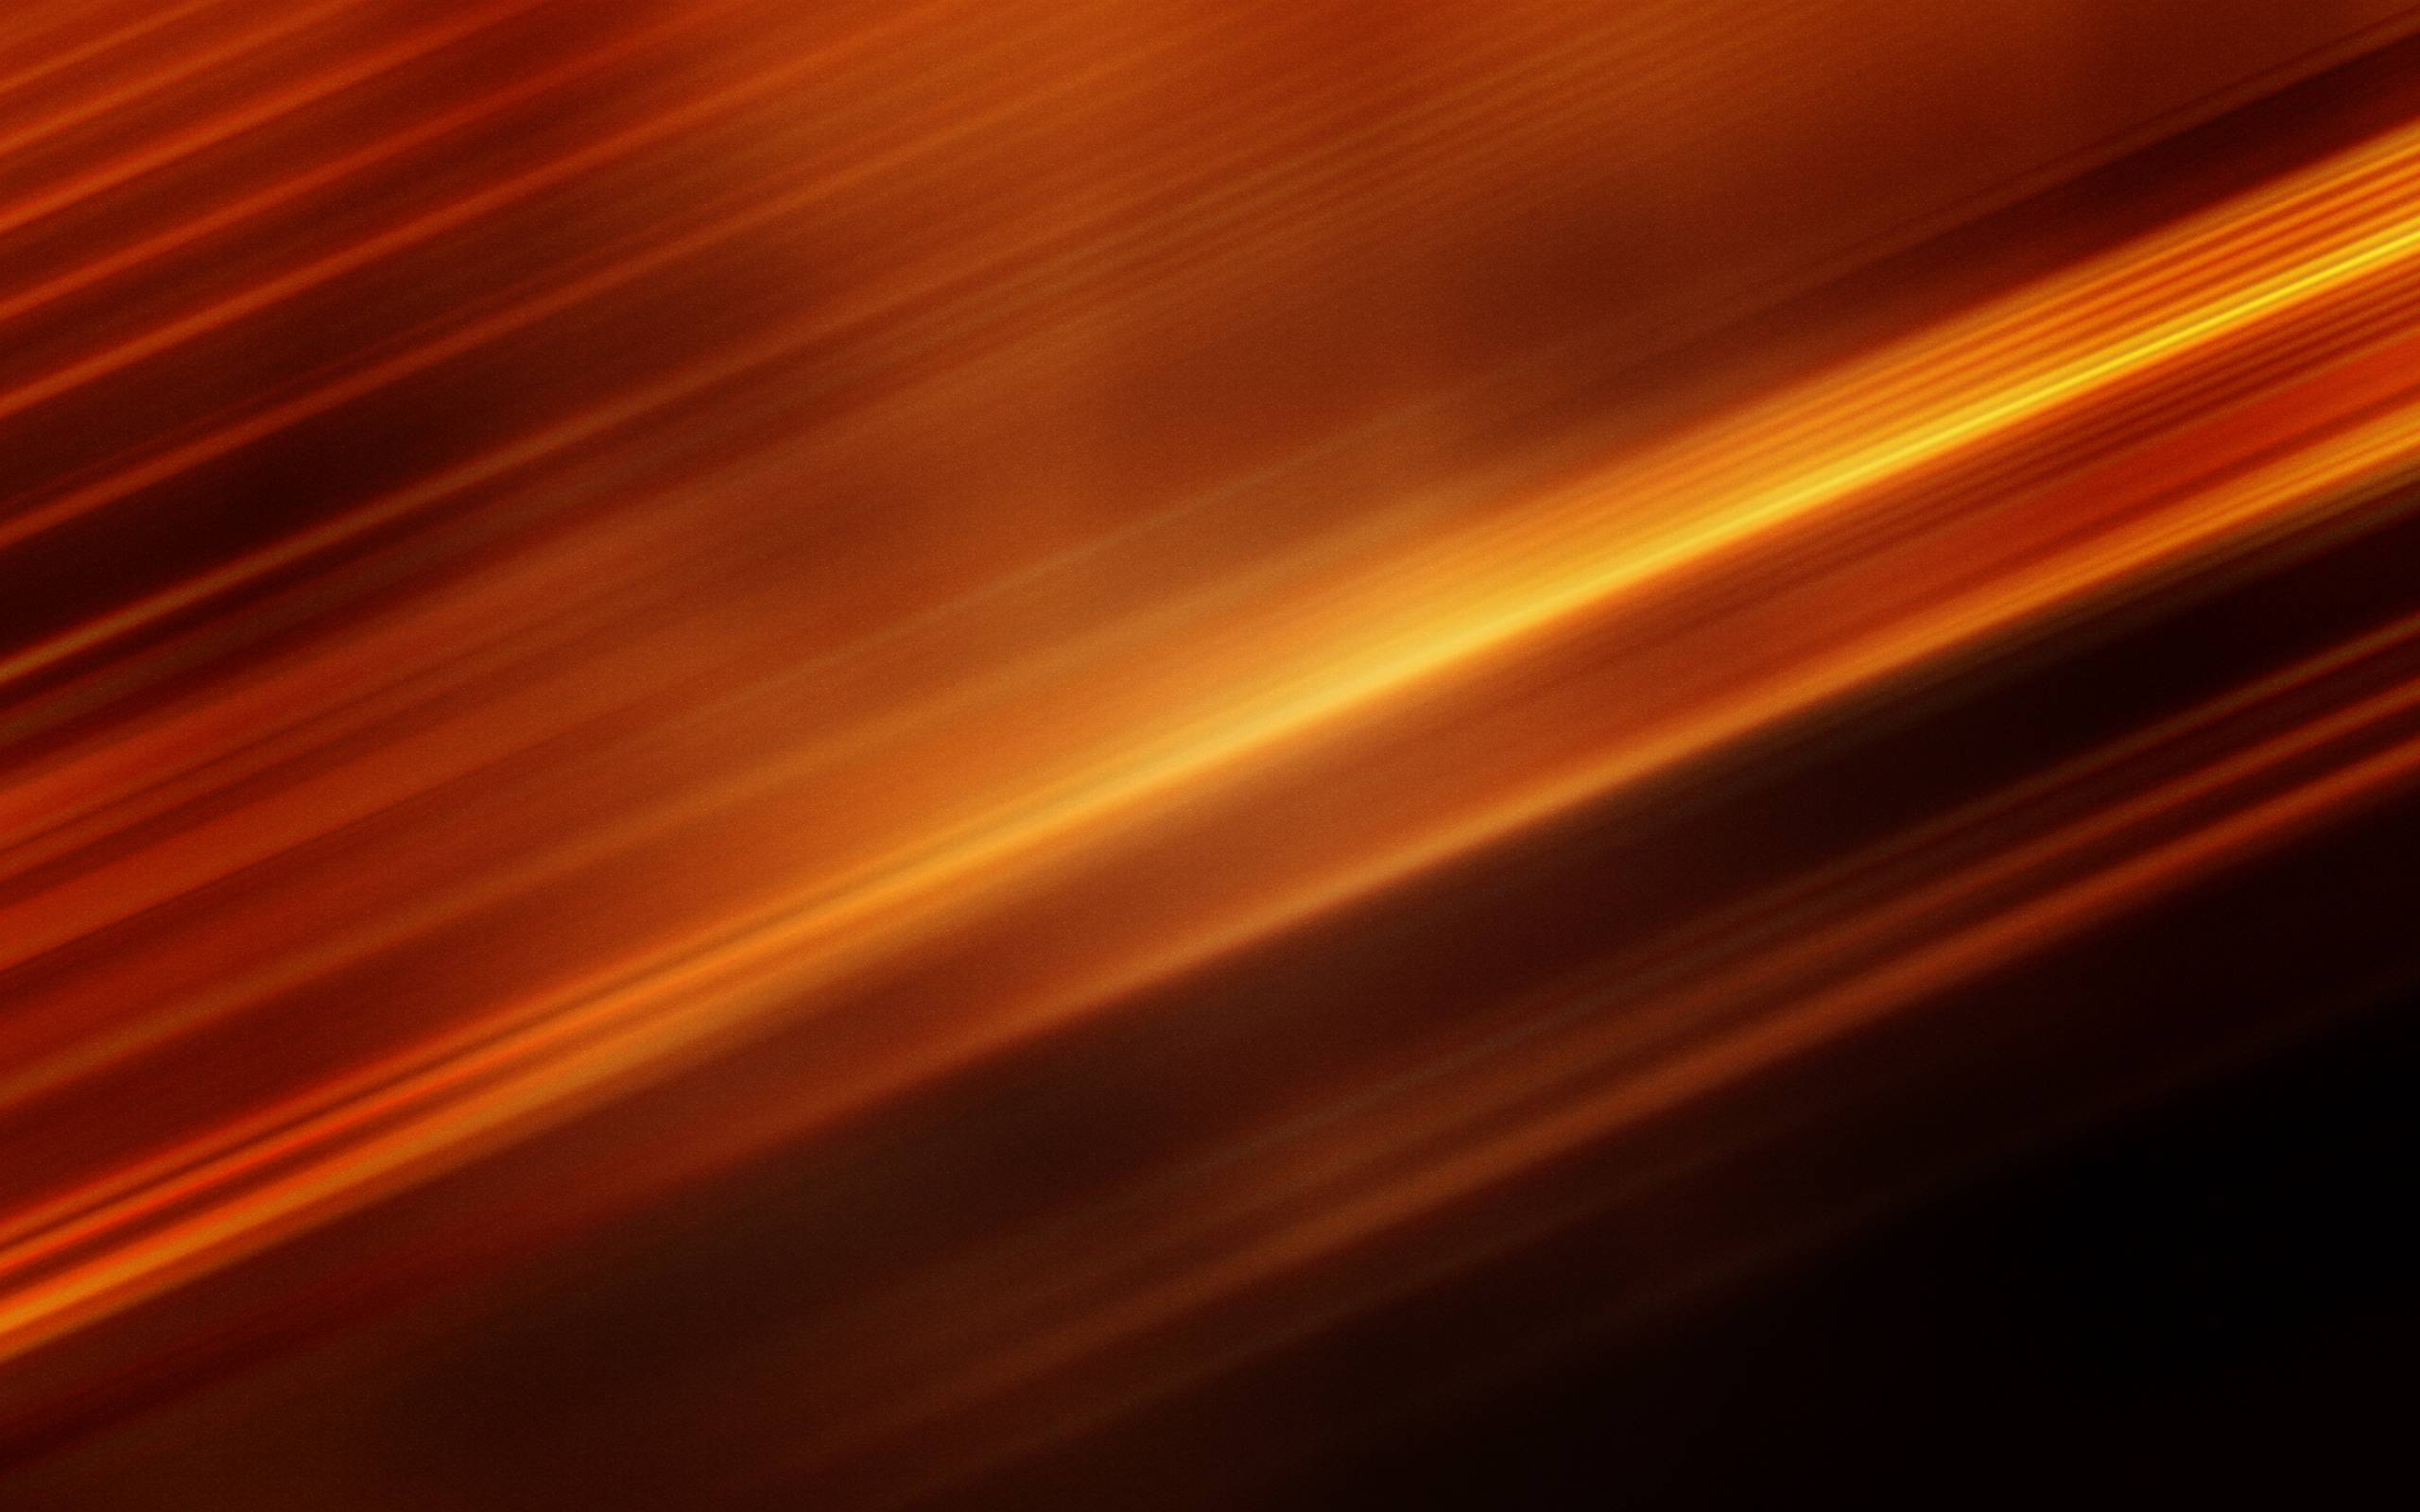 Abstract Backgrounds Image - Wallpaper Cave